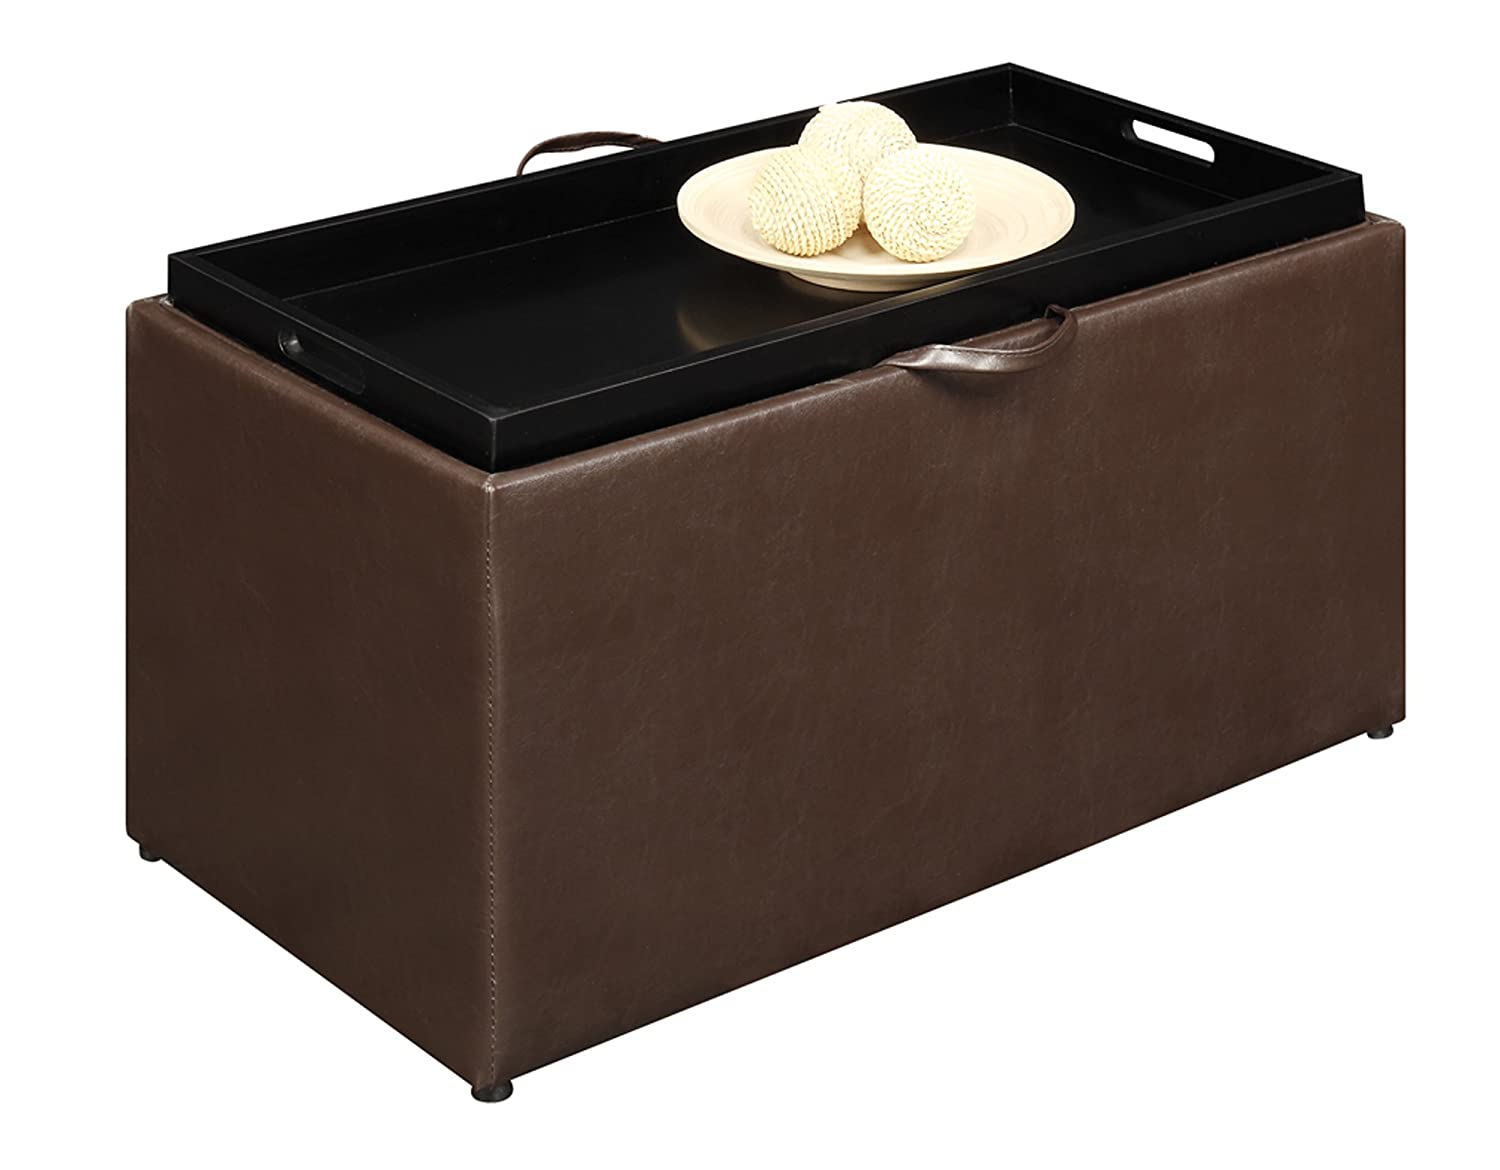 Amazon.com: Convenience Concepts 143012 Sheridan Faux Leather Storage Bench  with 2 Side Ottomans, Dark Espresso: Kitchen & Dining - Amazon.com: Convenience Concepts 143012 Sheridan Faux Leather